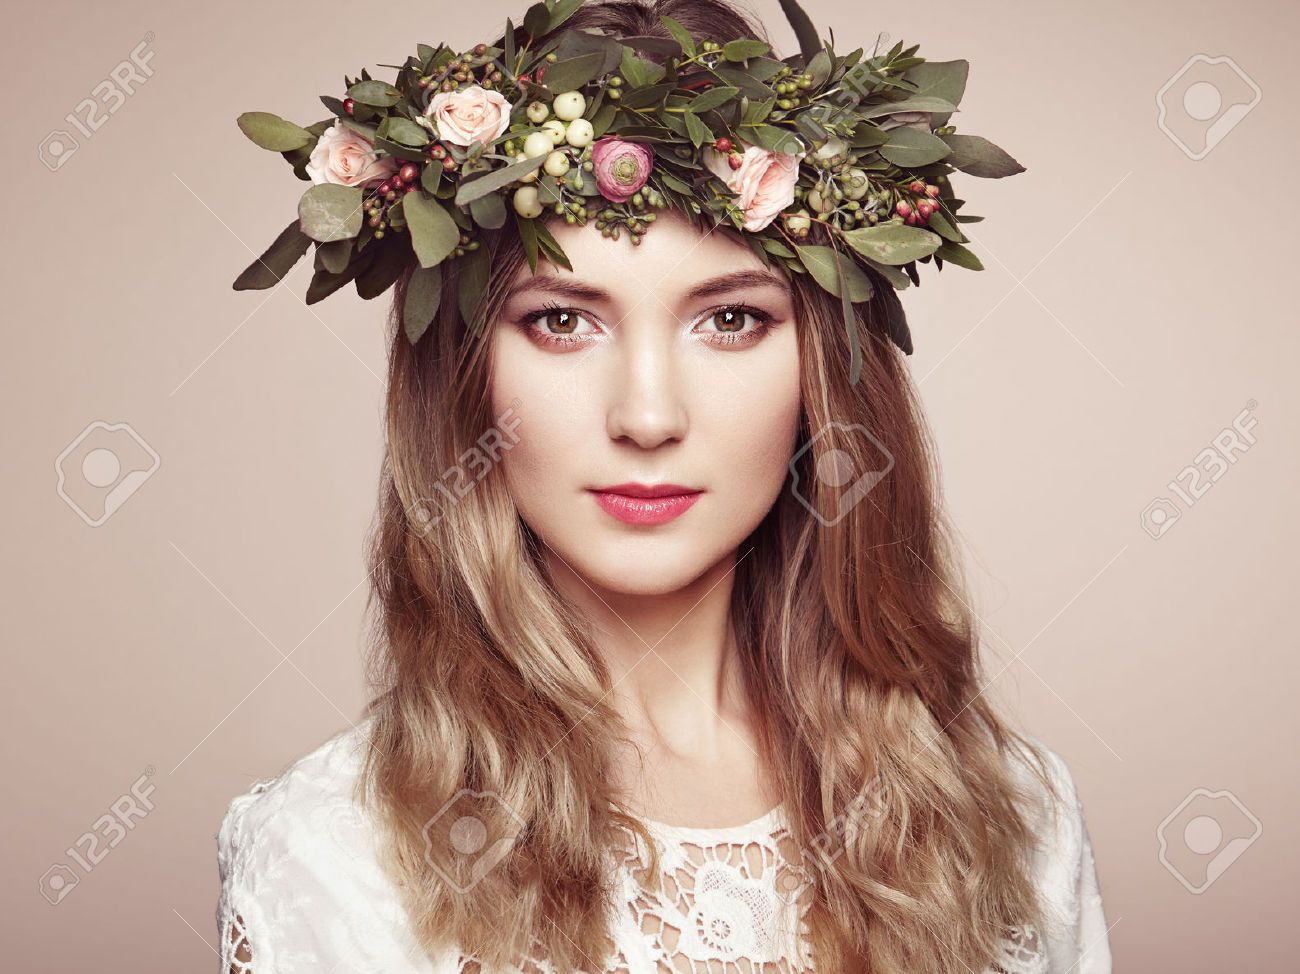 Beautiful blonde woman with flower wreath on her head beauty beautiful blonde woman with flower wreath on her head beauty izmirmasajfo Gallery